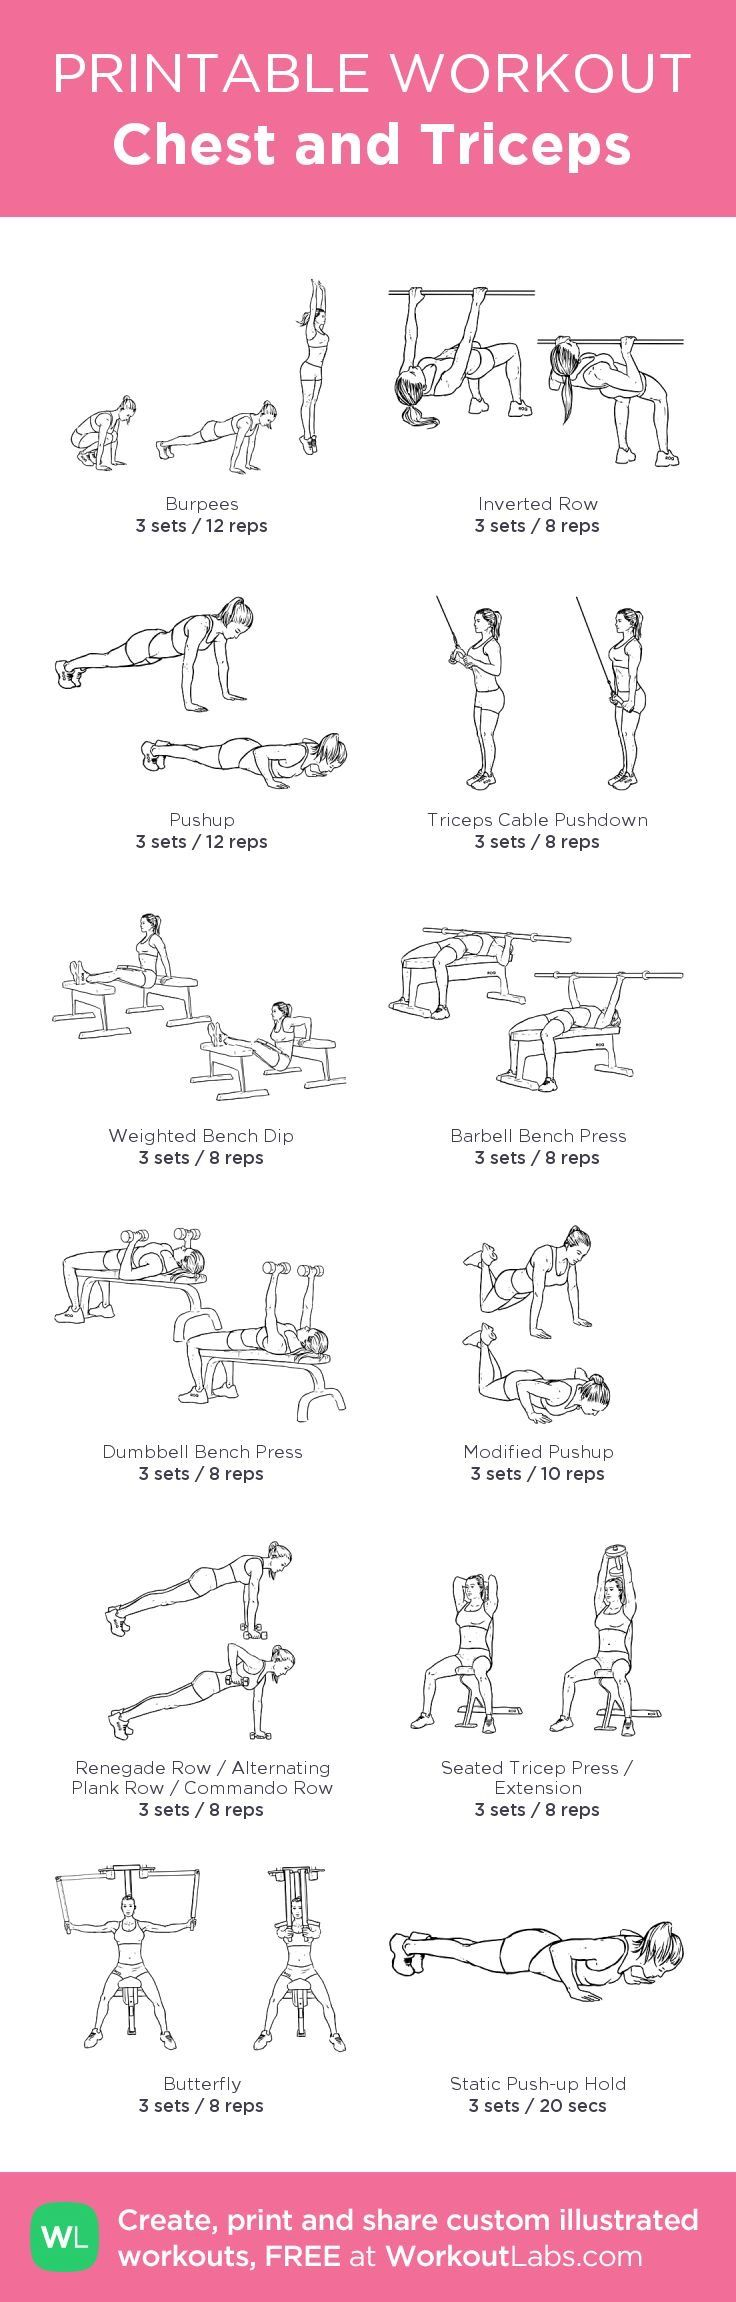 Chest And Tris Workout Posted By Customweightlossprogram Com